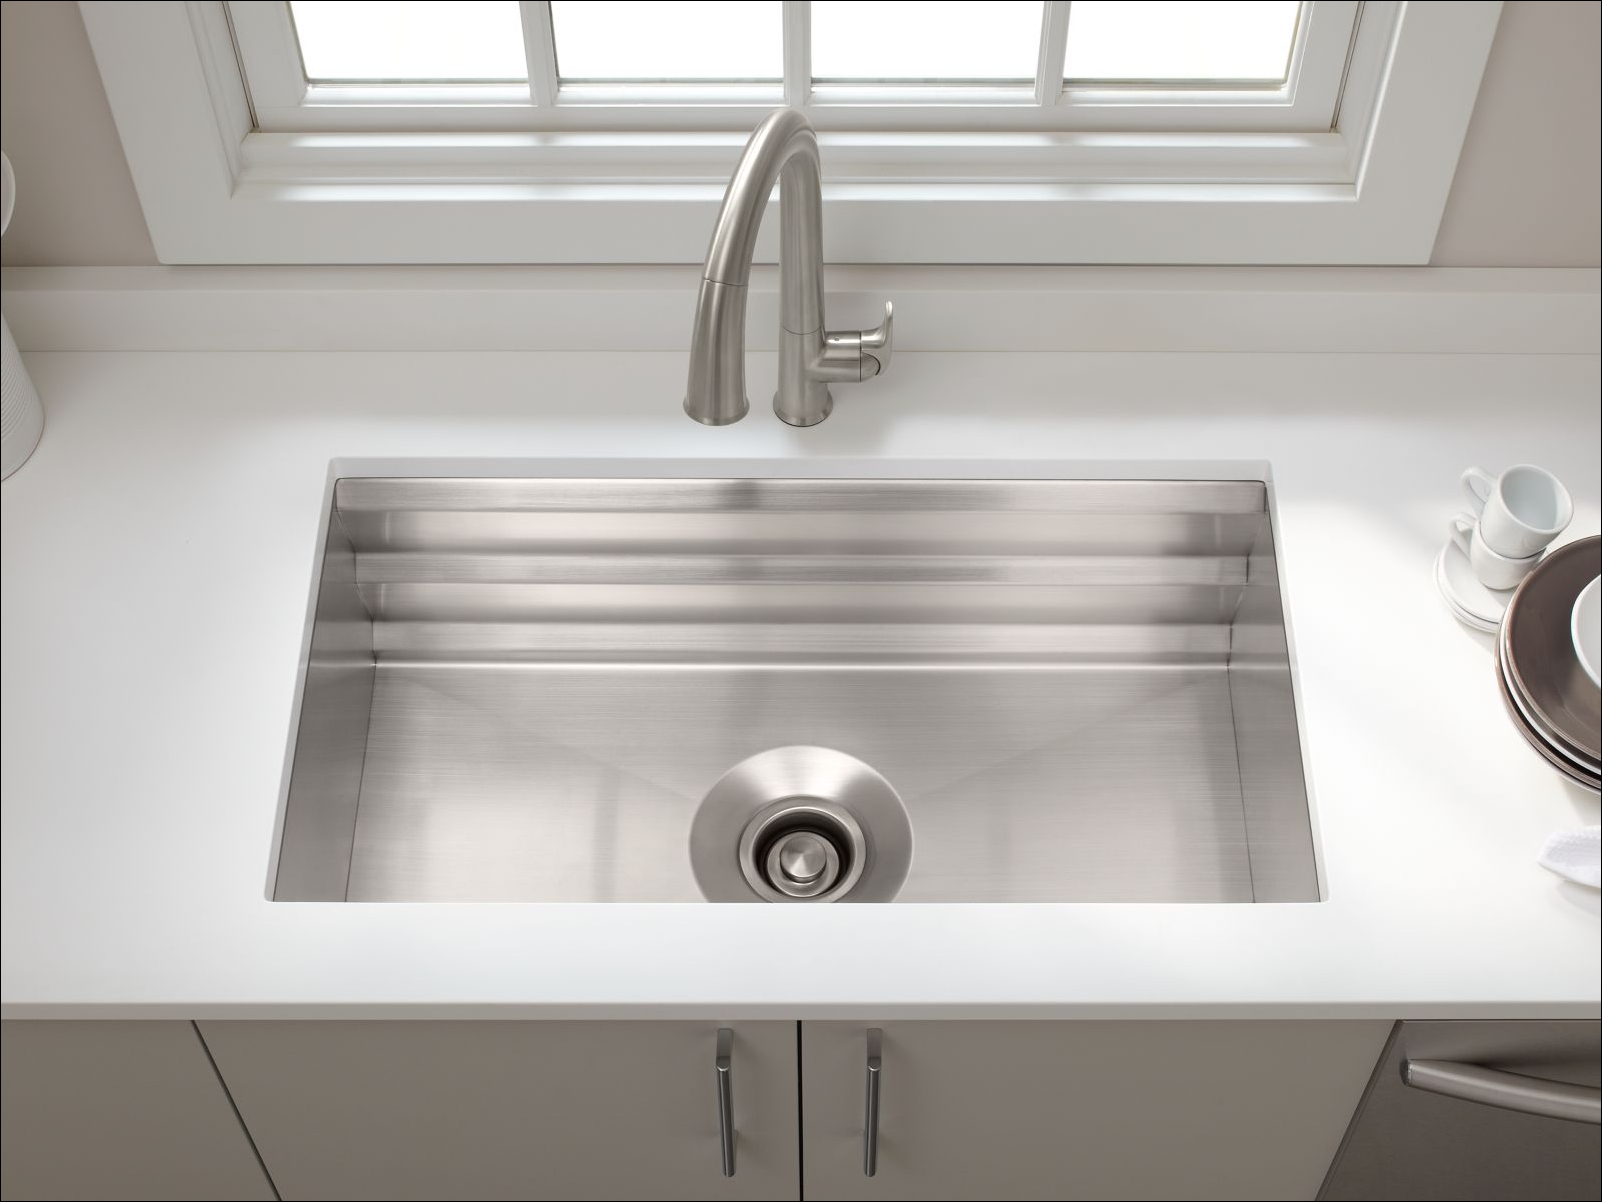 ... Kitchen Sink with Silent Shield? and Accessories - FaucetDirect.com